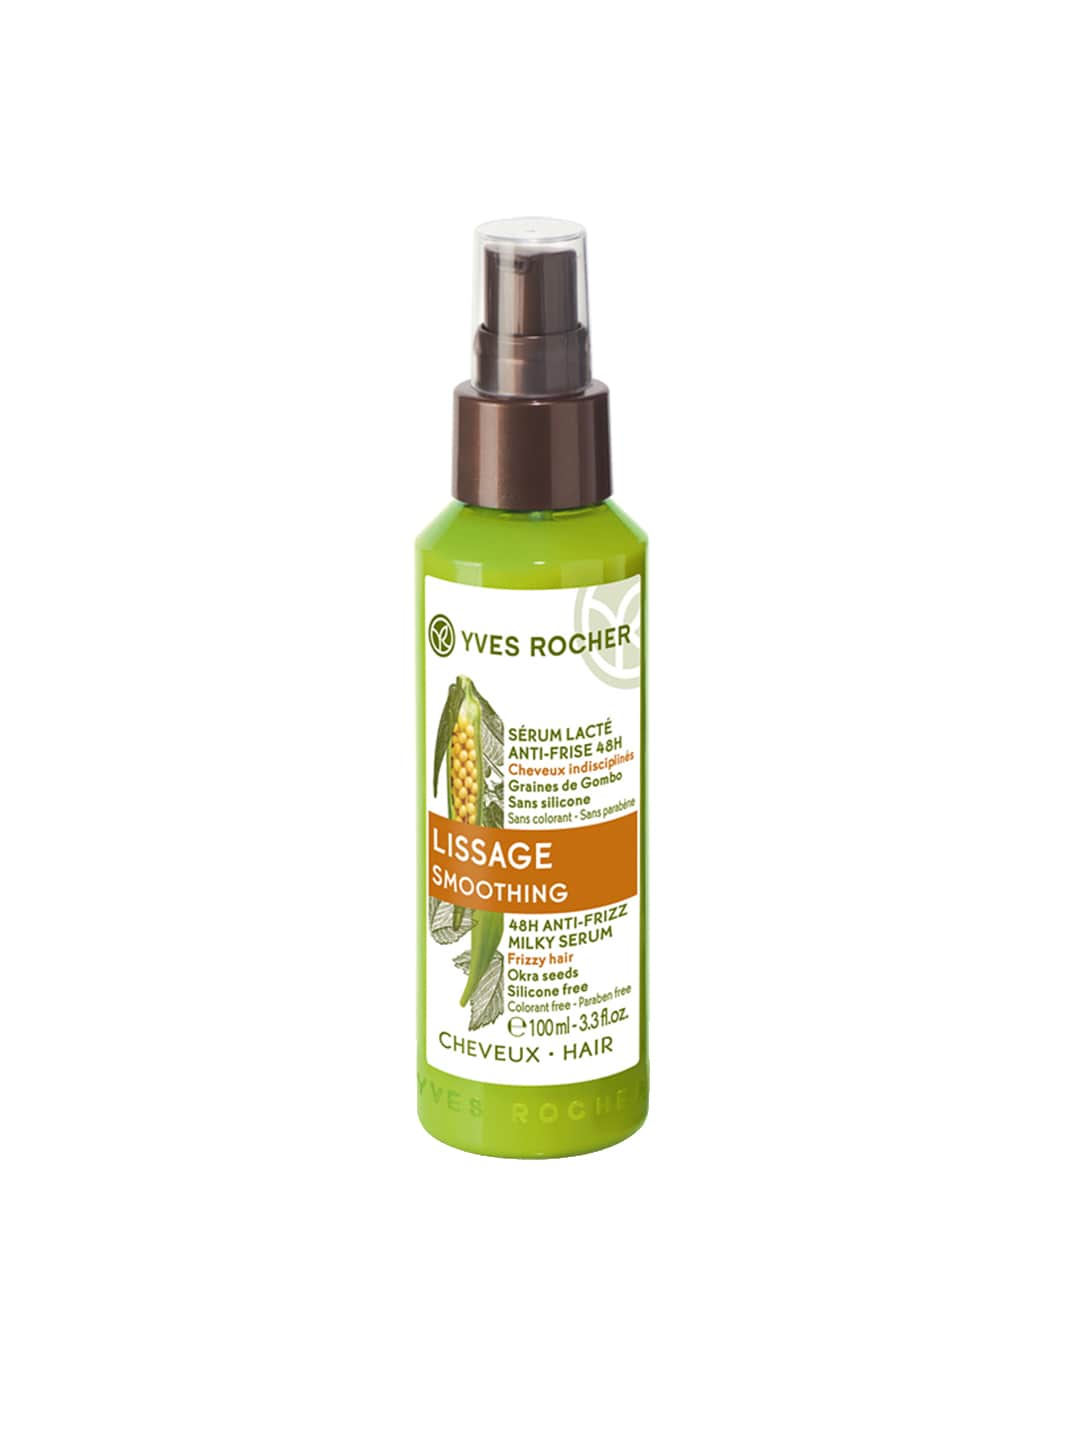 YVES ROCHER Unisex Lissage Smoothing 48H Anti-Frizz Milky Serum 100 ml image